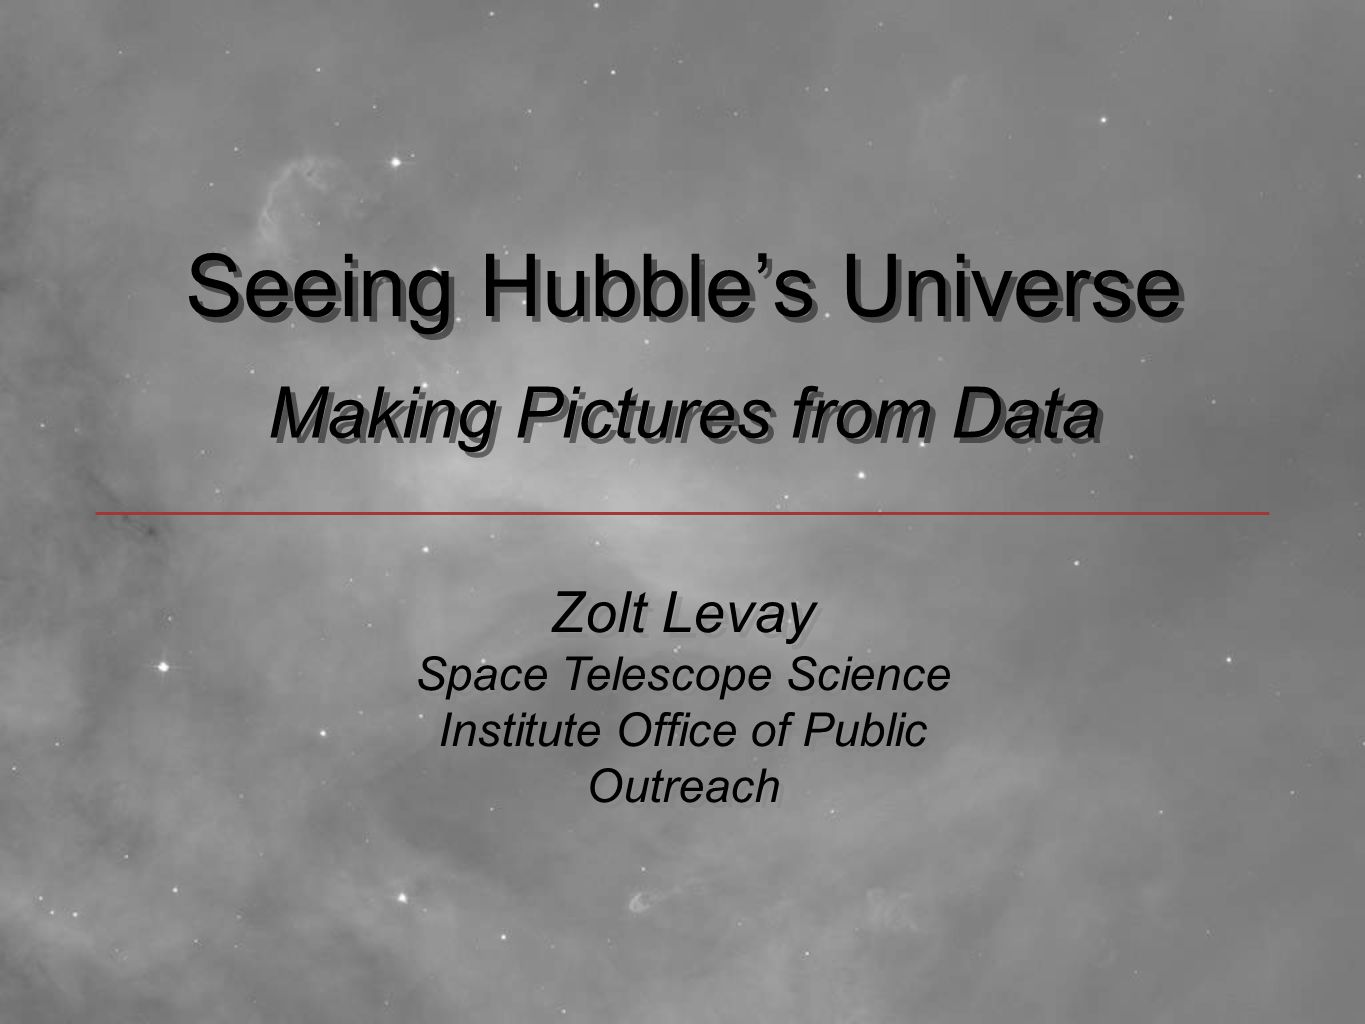 Seeing Hubble's Universe Making Pictures from Data Zolt Levay Space Telescope Science Institute Office of Public Outreach Zolt Levay Space Telescope Science Institute Office of Public Outreach